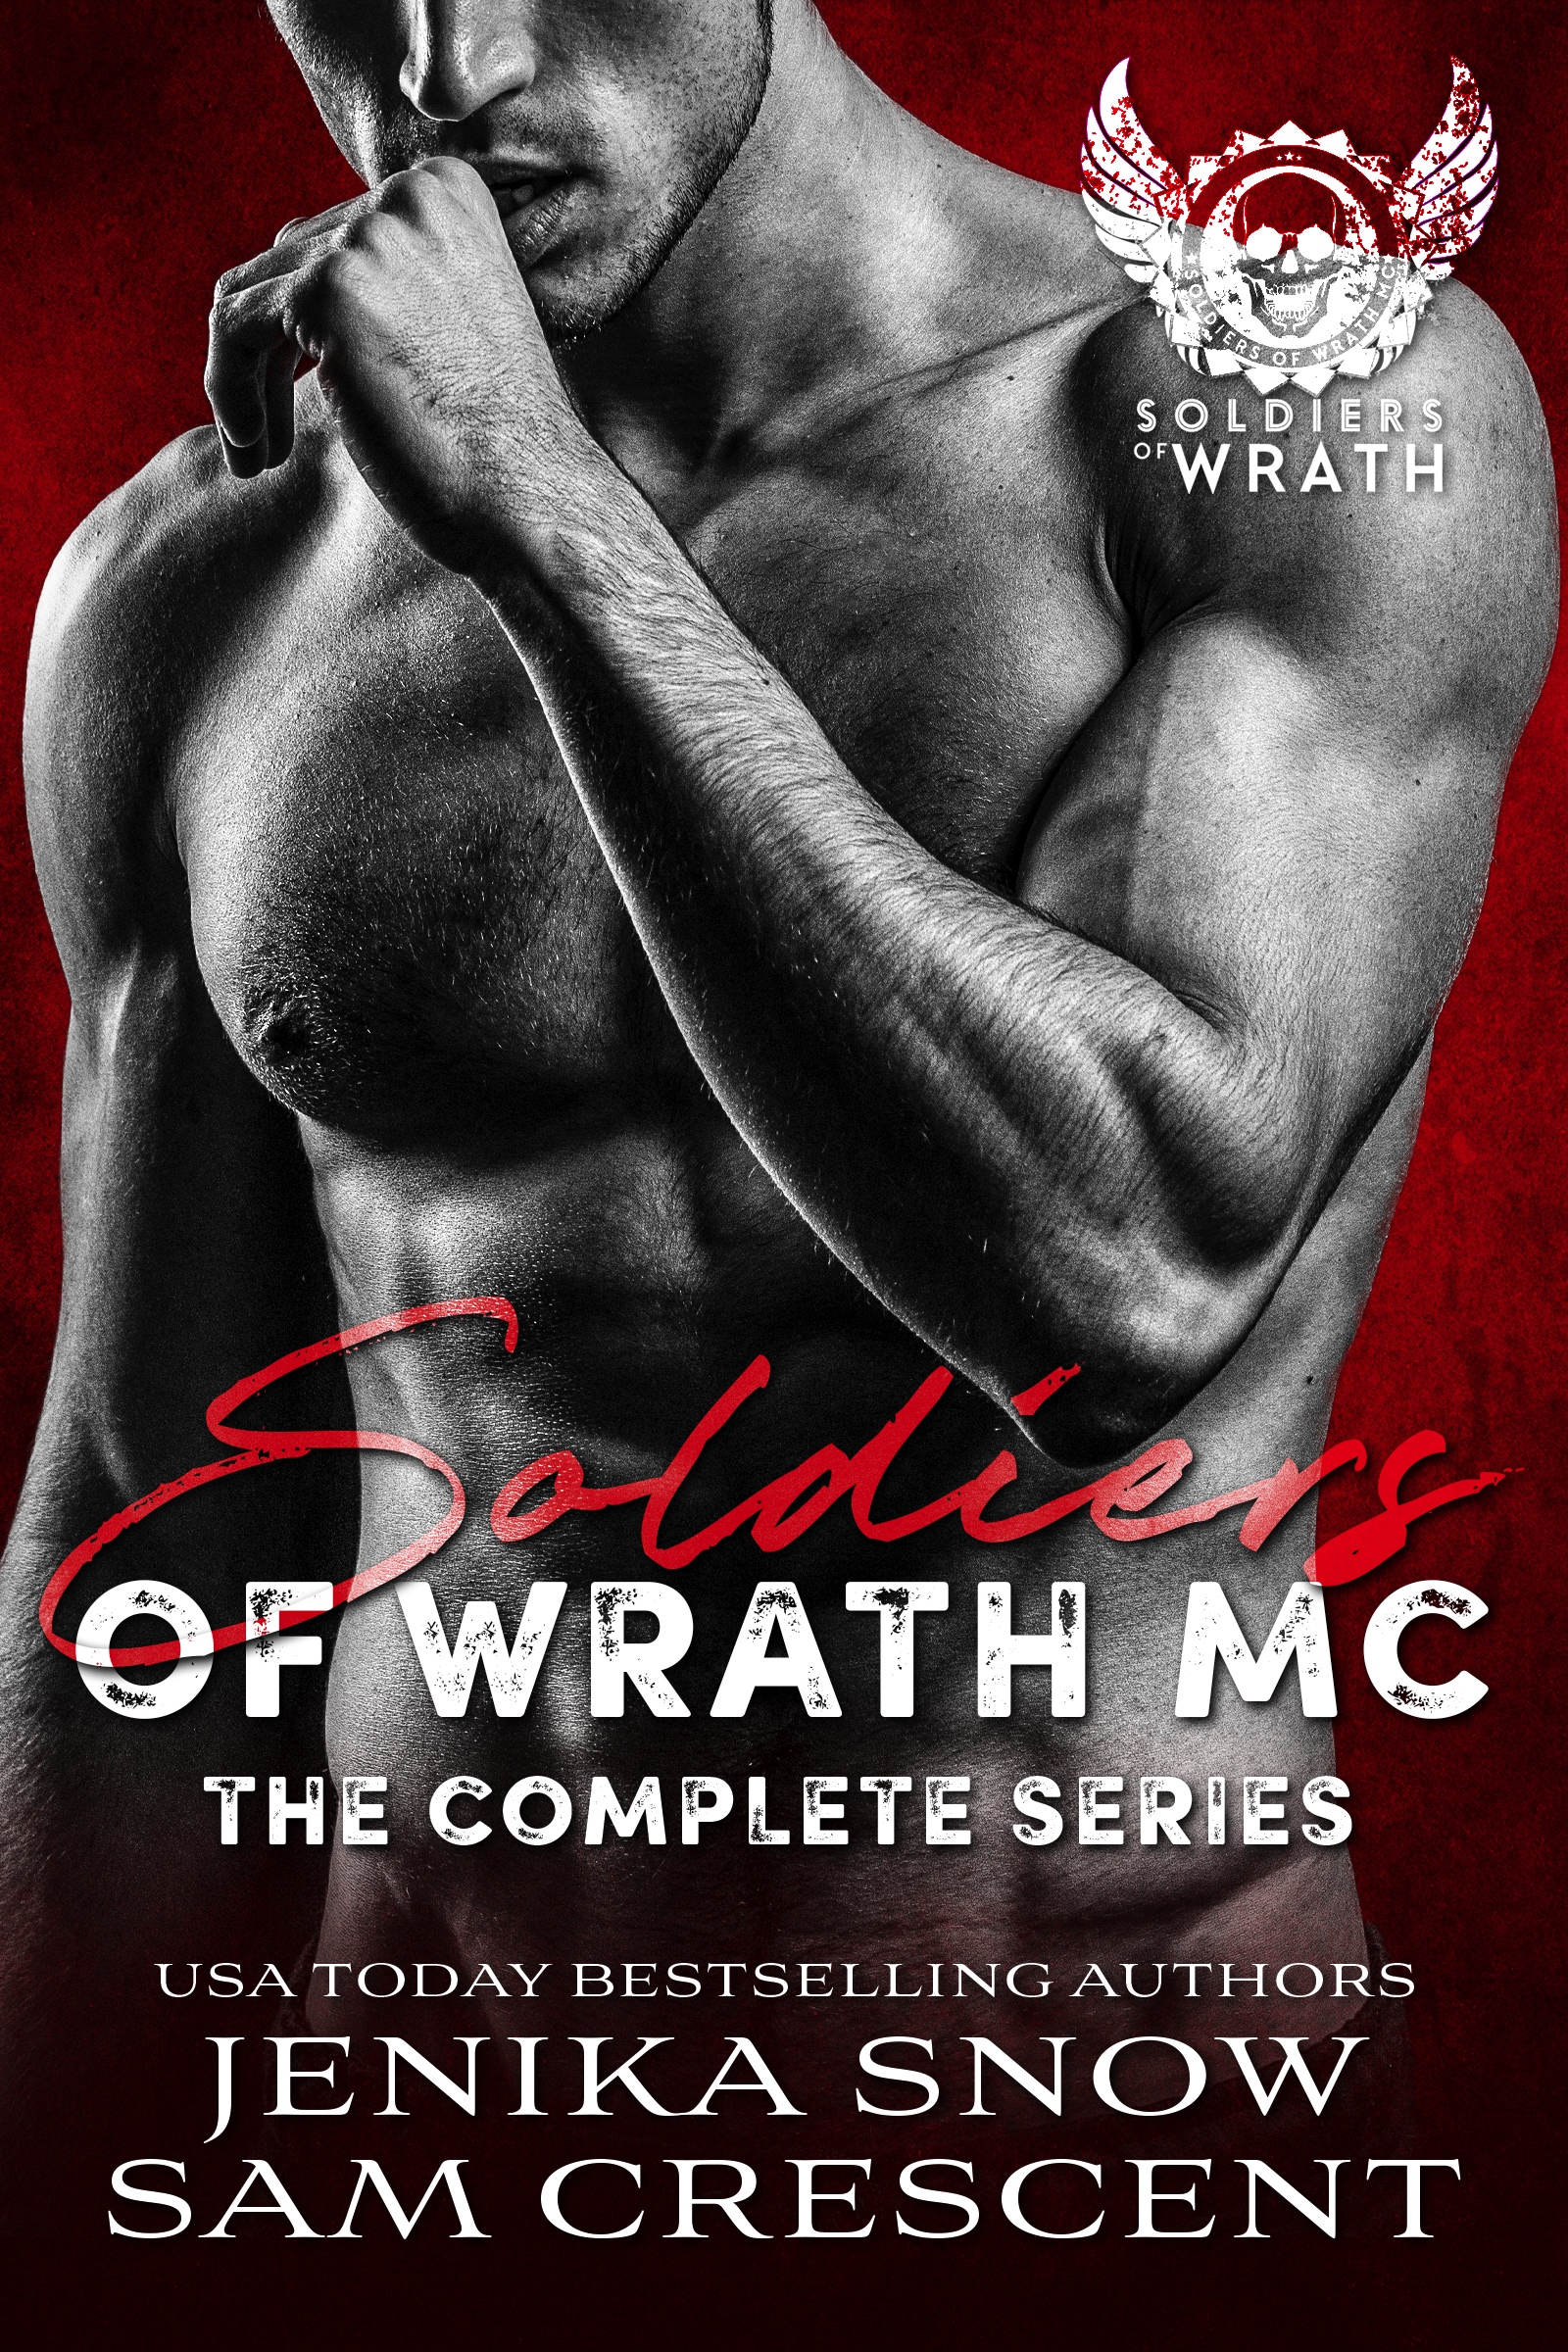 The-Soldiers-of-Wrath-MC-Kindle